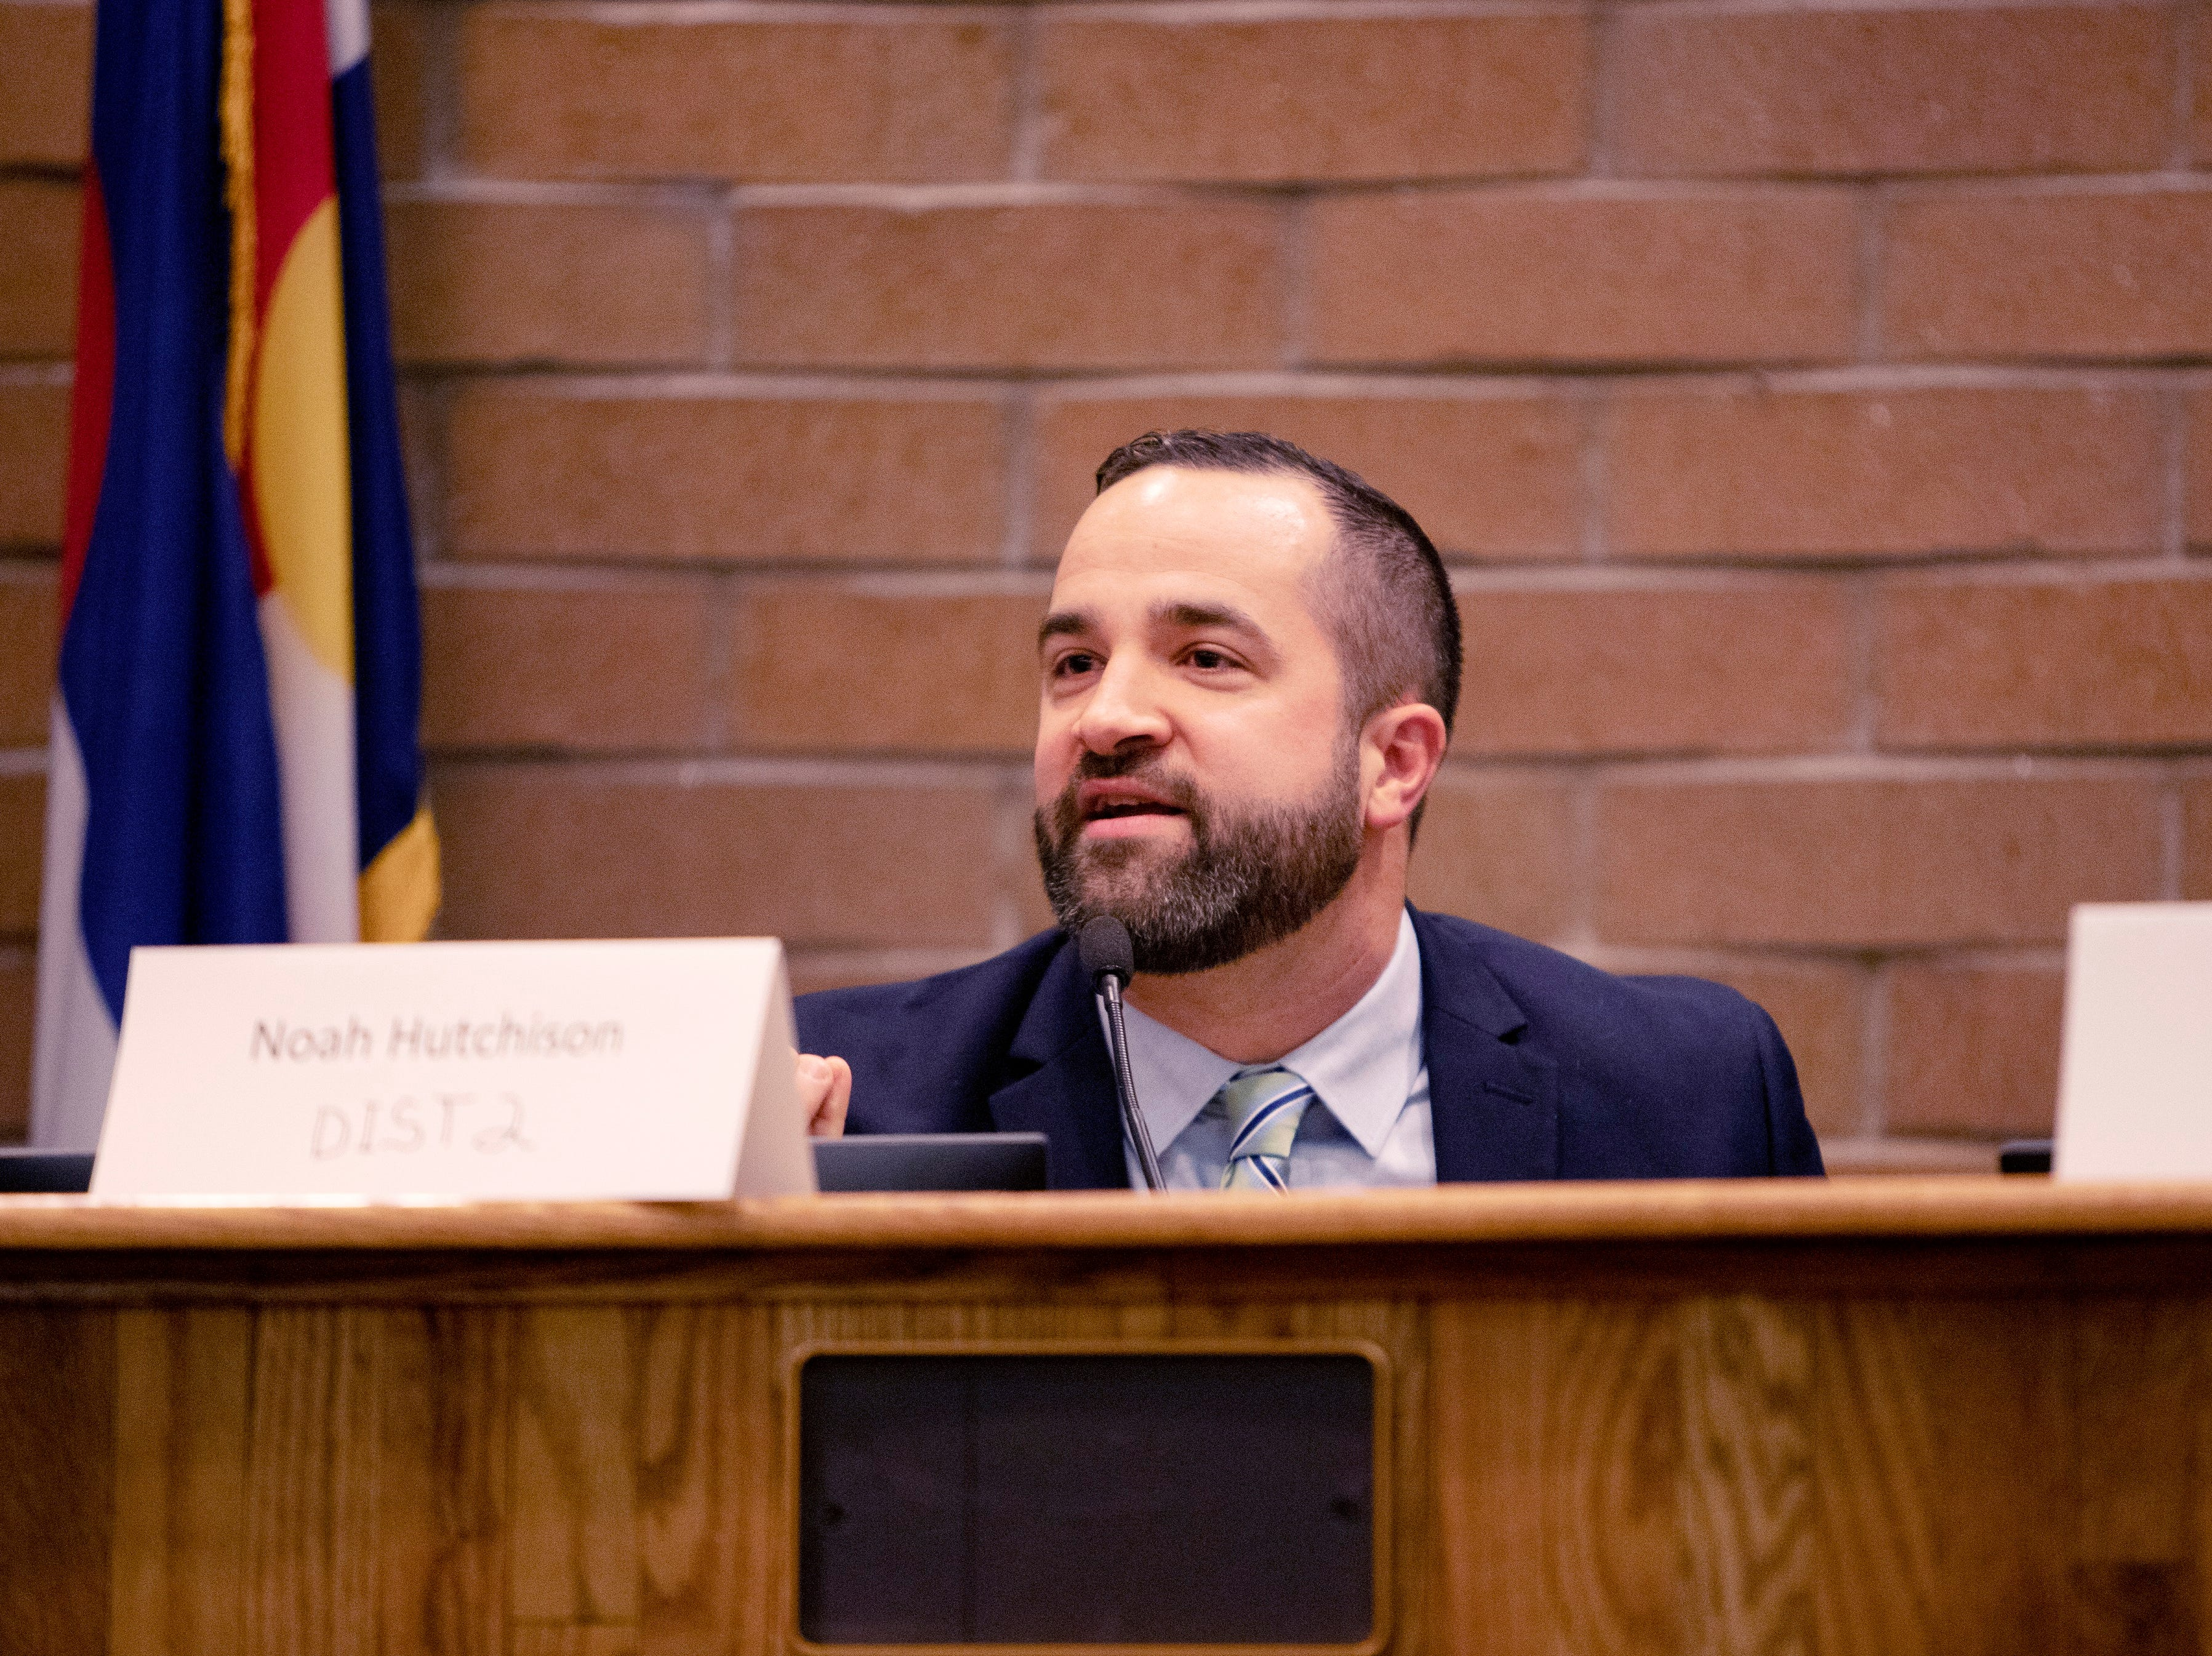 City Council candidate, Noah Hutchison participates in the candidate forum hosted by The League of  Women Voters of Larimer County at City Hall on March 6.